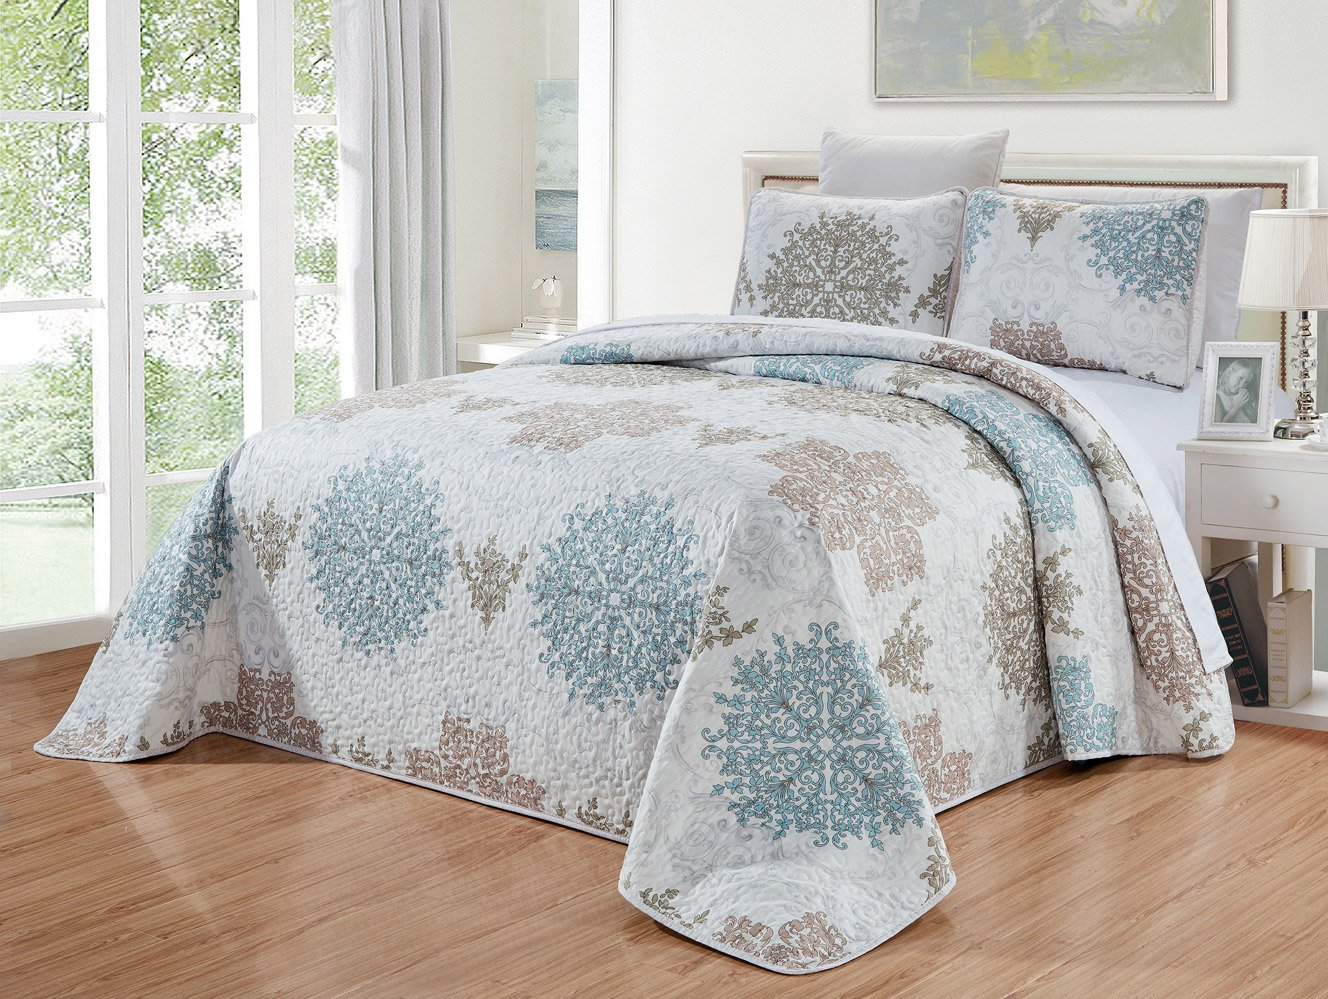 GrandLinen 3-Piece Fine printed Oversize (115'' X 95'') Quilt Set Reversible Bedspread Coverlet (California) CAL KING SIZE Bed Cover (Blue, White, Grey Scroll)